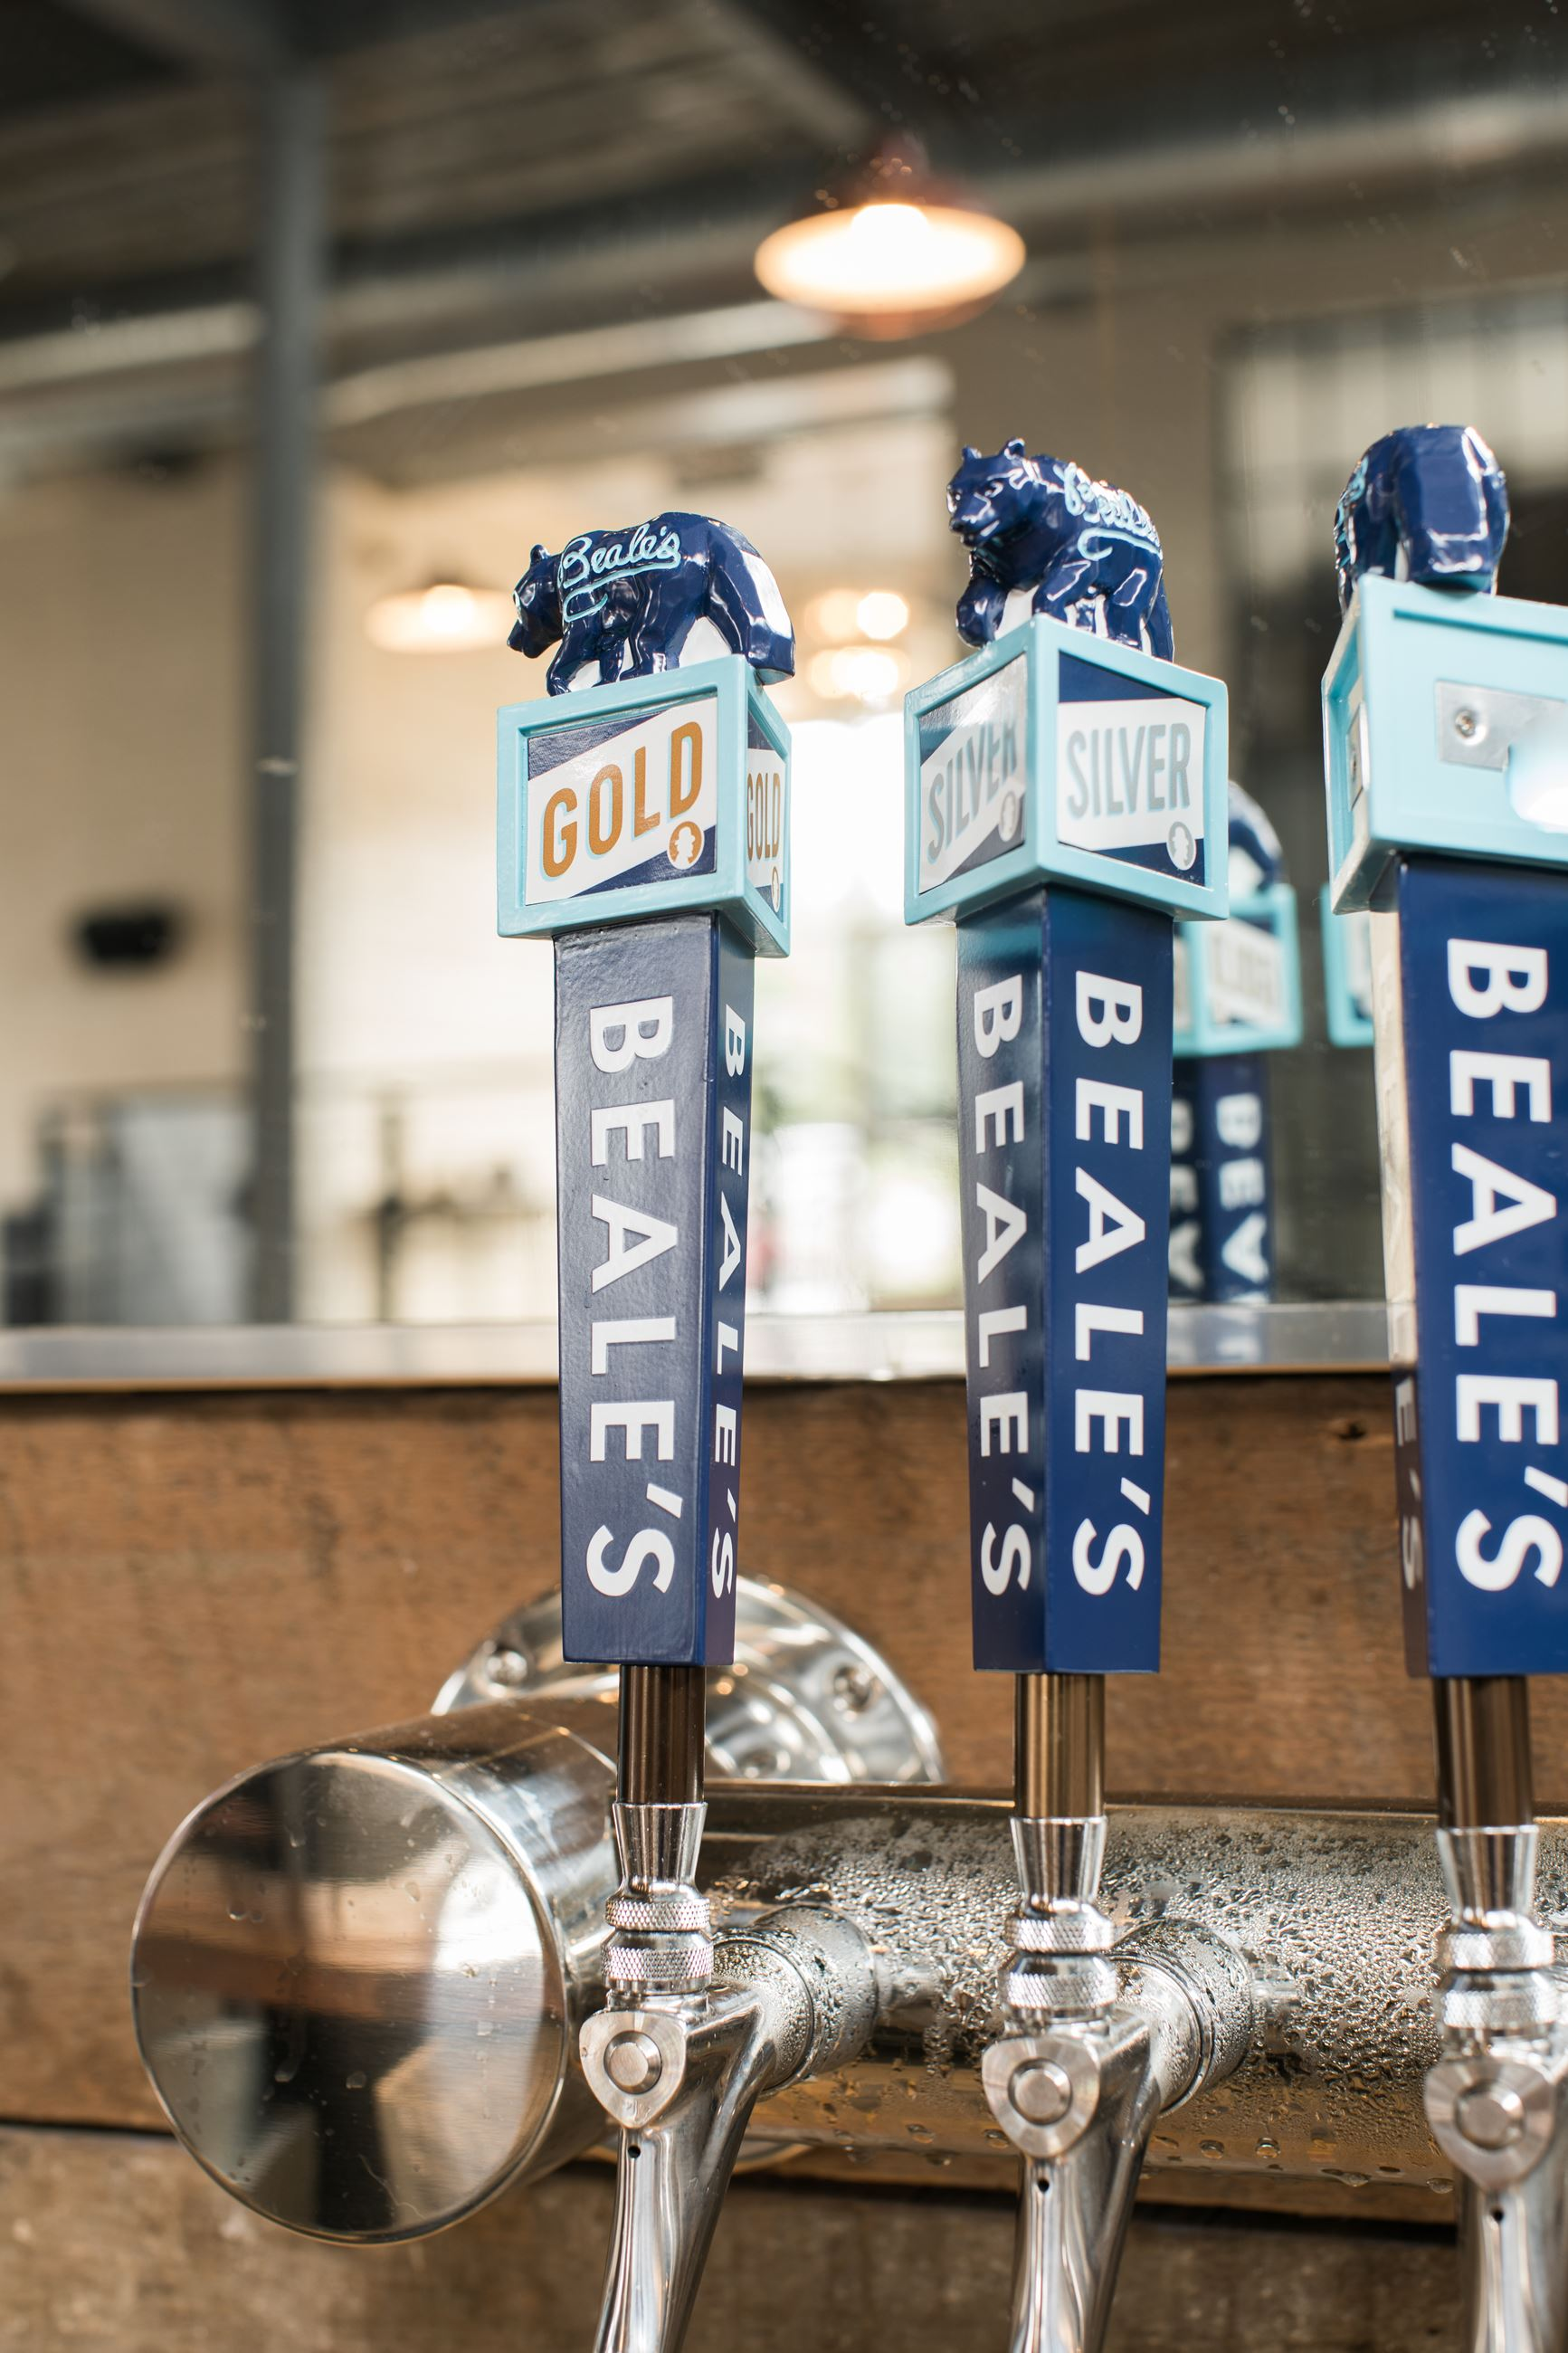 Beale's beer on tap